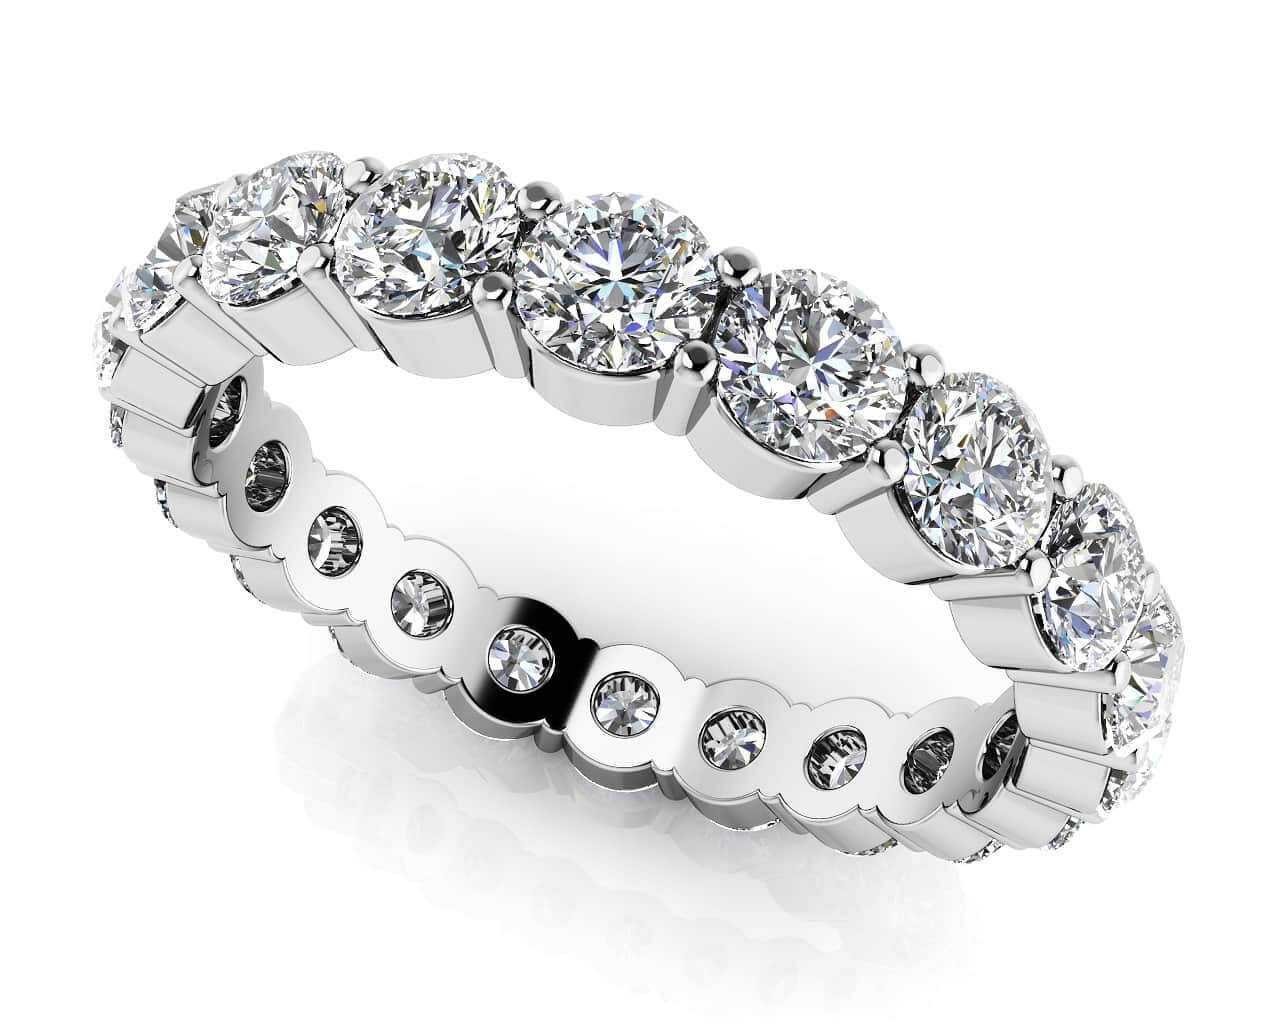 eternity by carat mask engagement group diamond designed blaze ambar band ring frame bands bez